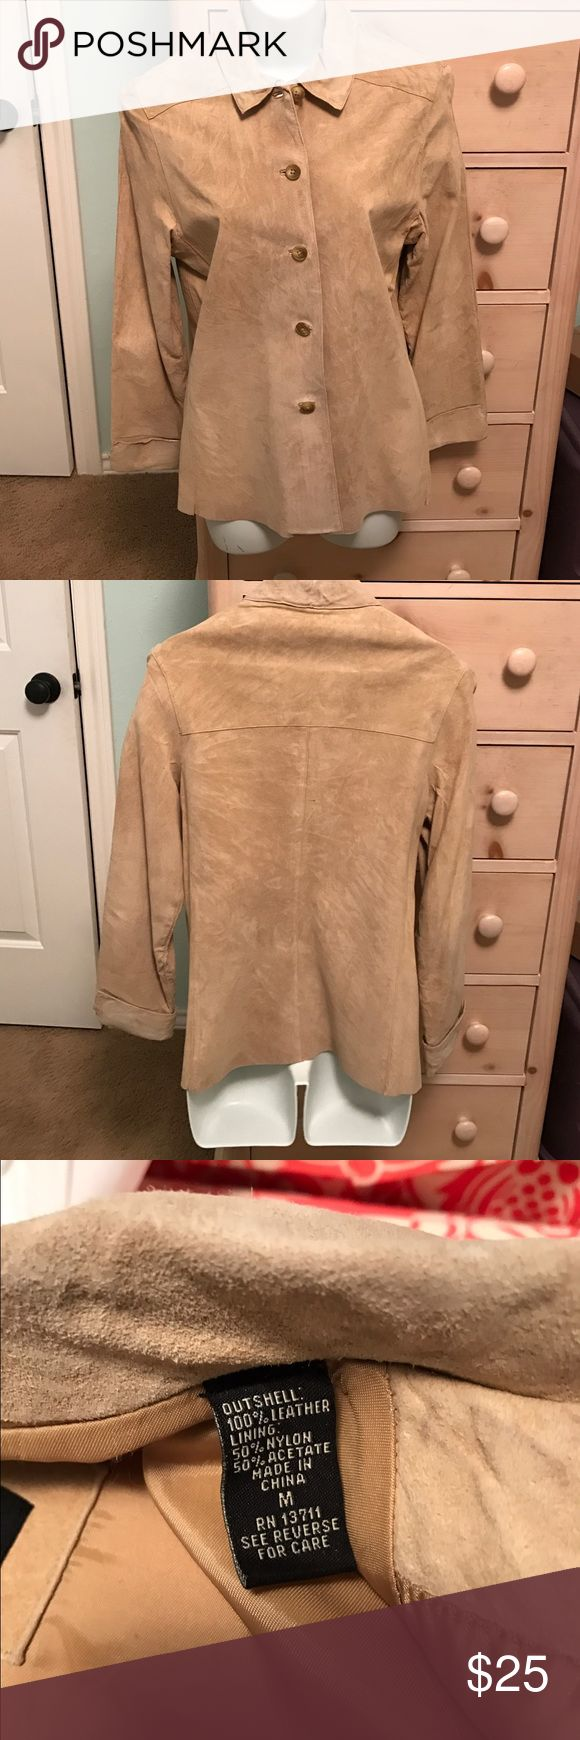 Tan Leather Jacket Only worn a few times- has been dry cleaned & has a spot as shown in pic Valerie Stevens Jackets & Coats Blazers